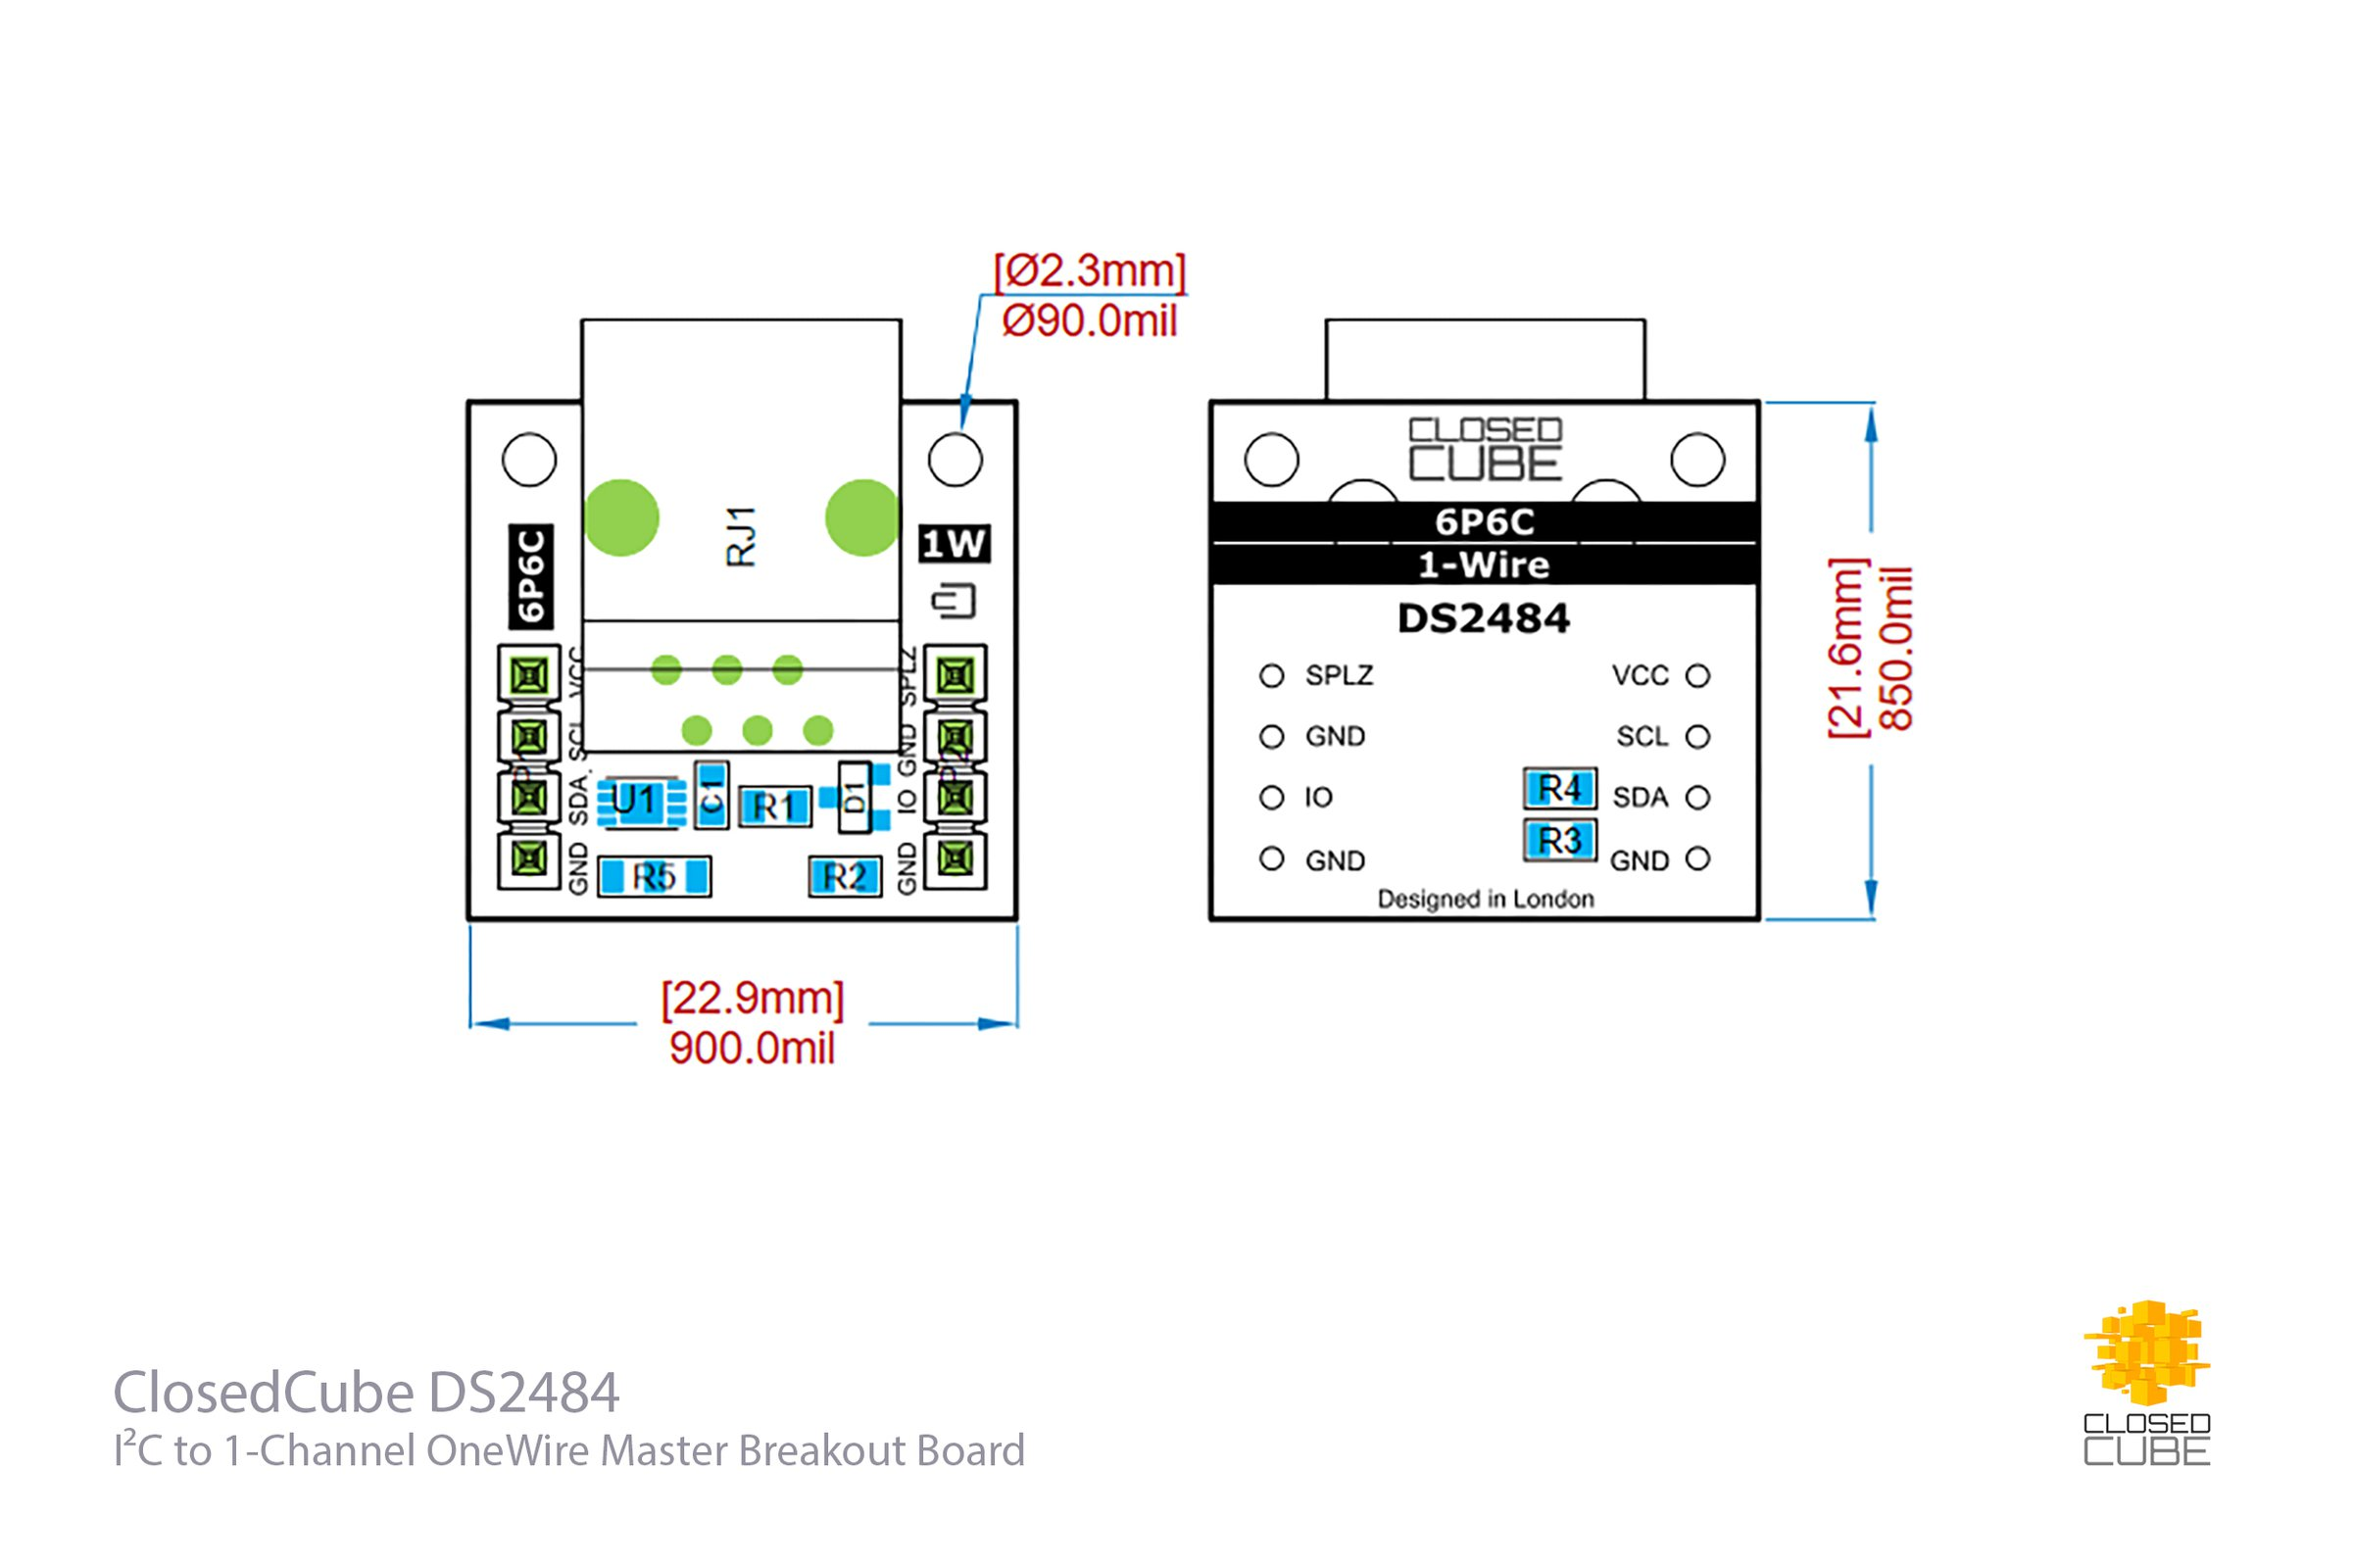 Ds2484 I2c To 1 Channel Onewire Master Breakout From Closedcube On Wiring Diagram 3